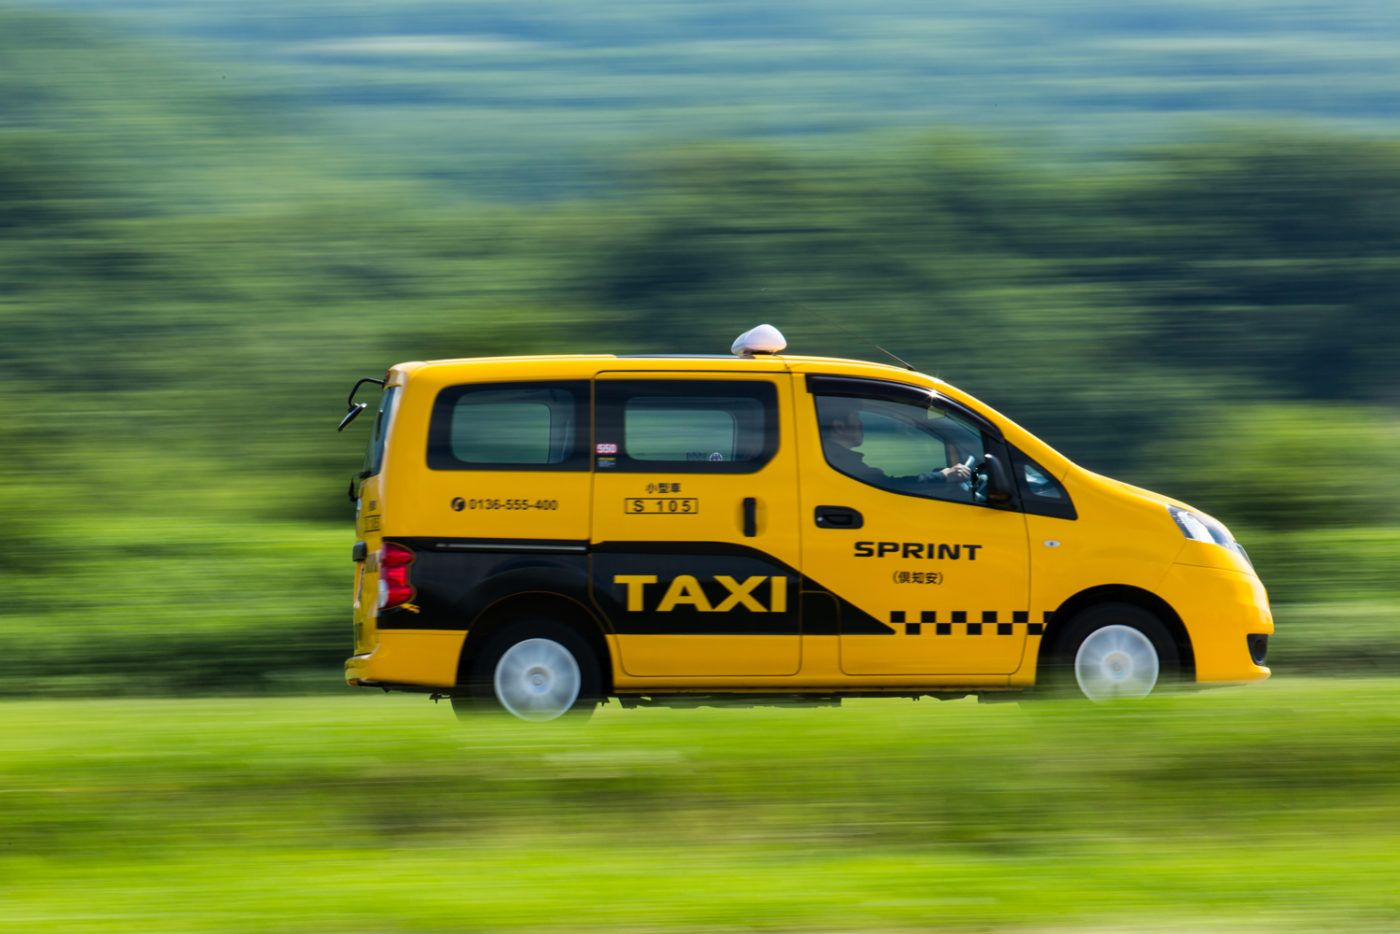 Taxi Service Near Me, Taxi Number in Farnham AB Taxis Taxi